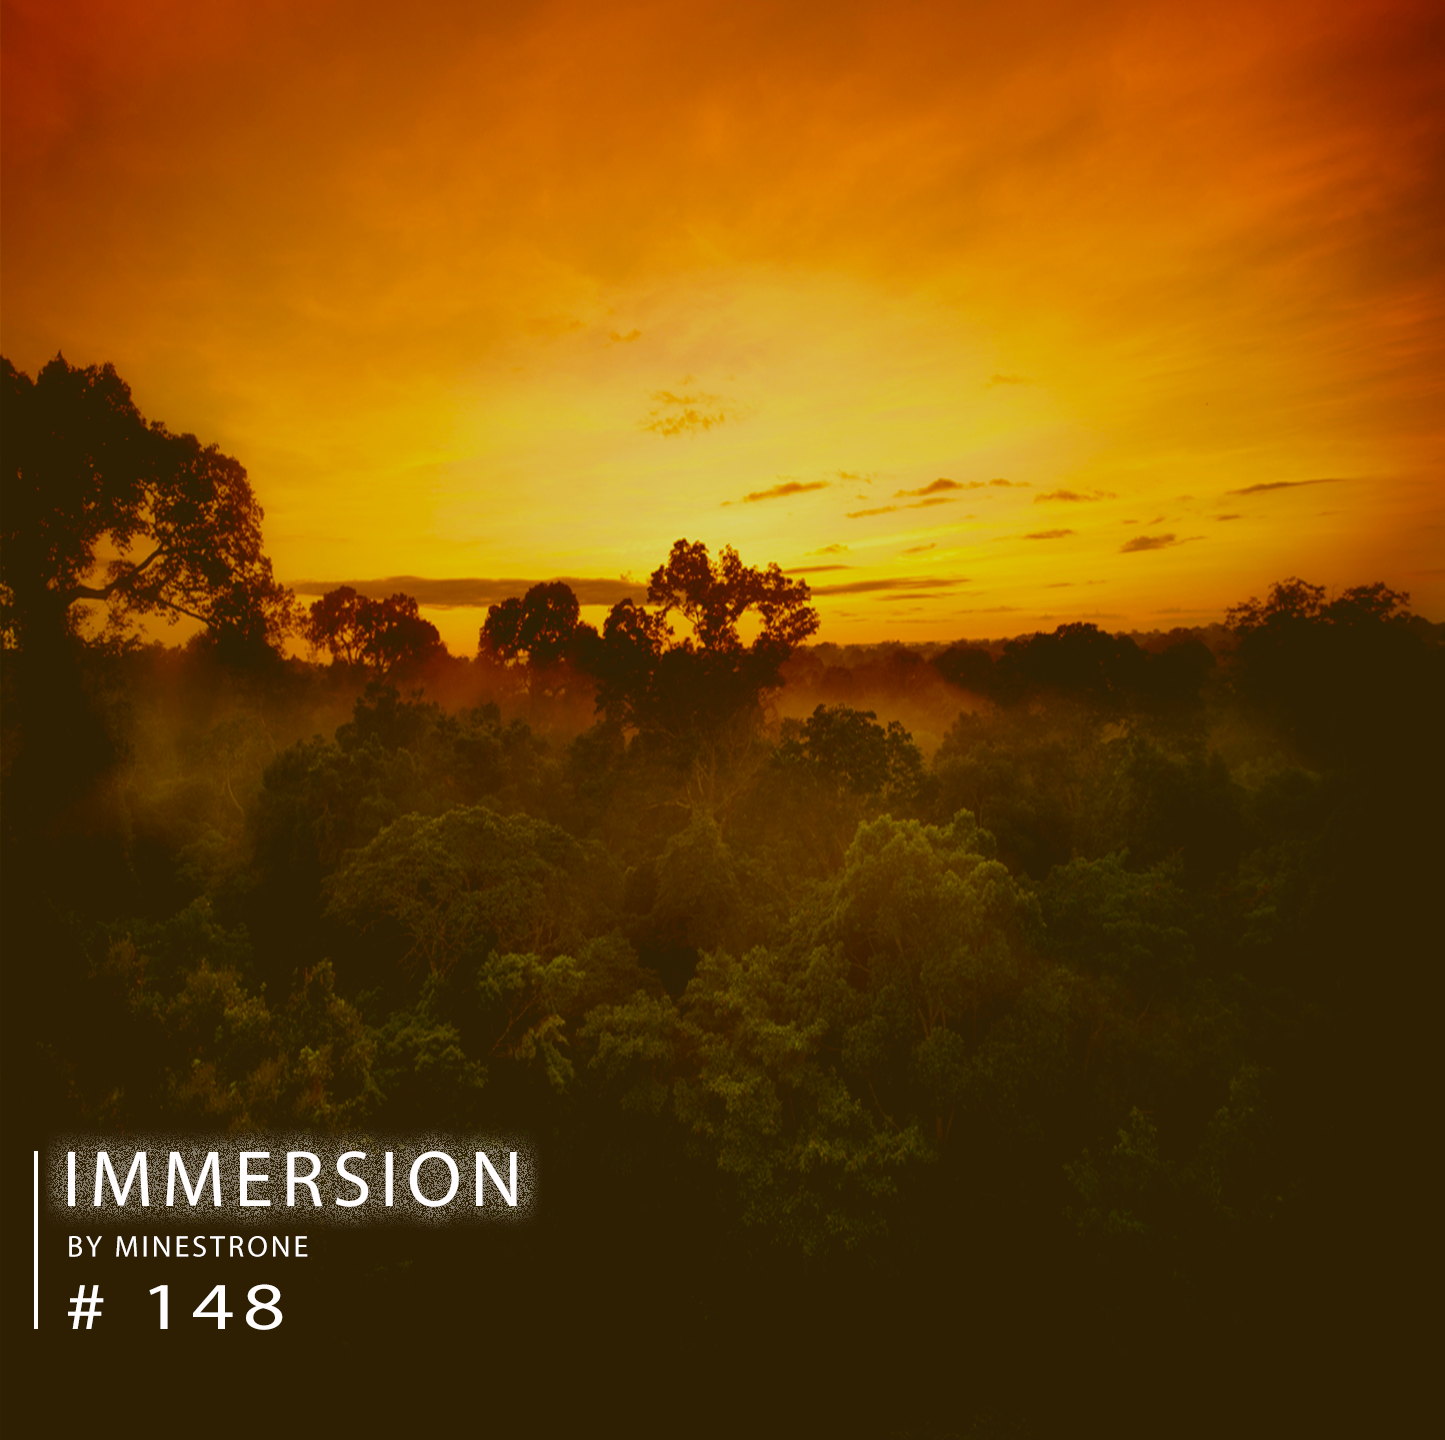 Immersion :: Episode 148 (aired on April 6th, 2020) banner logo